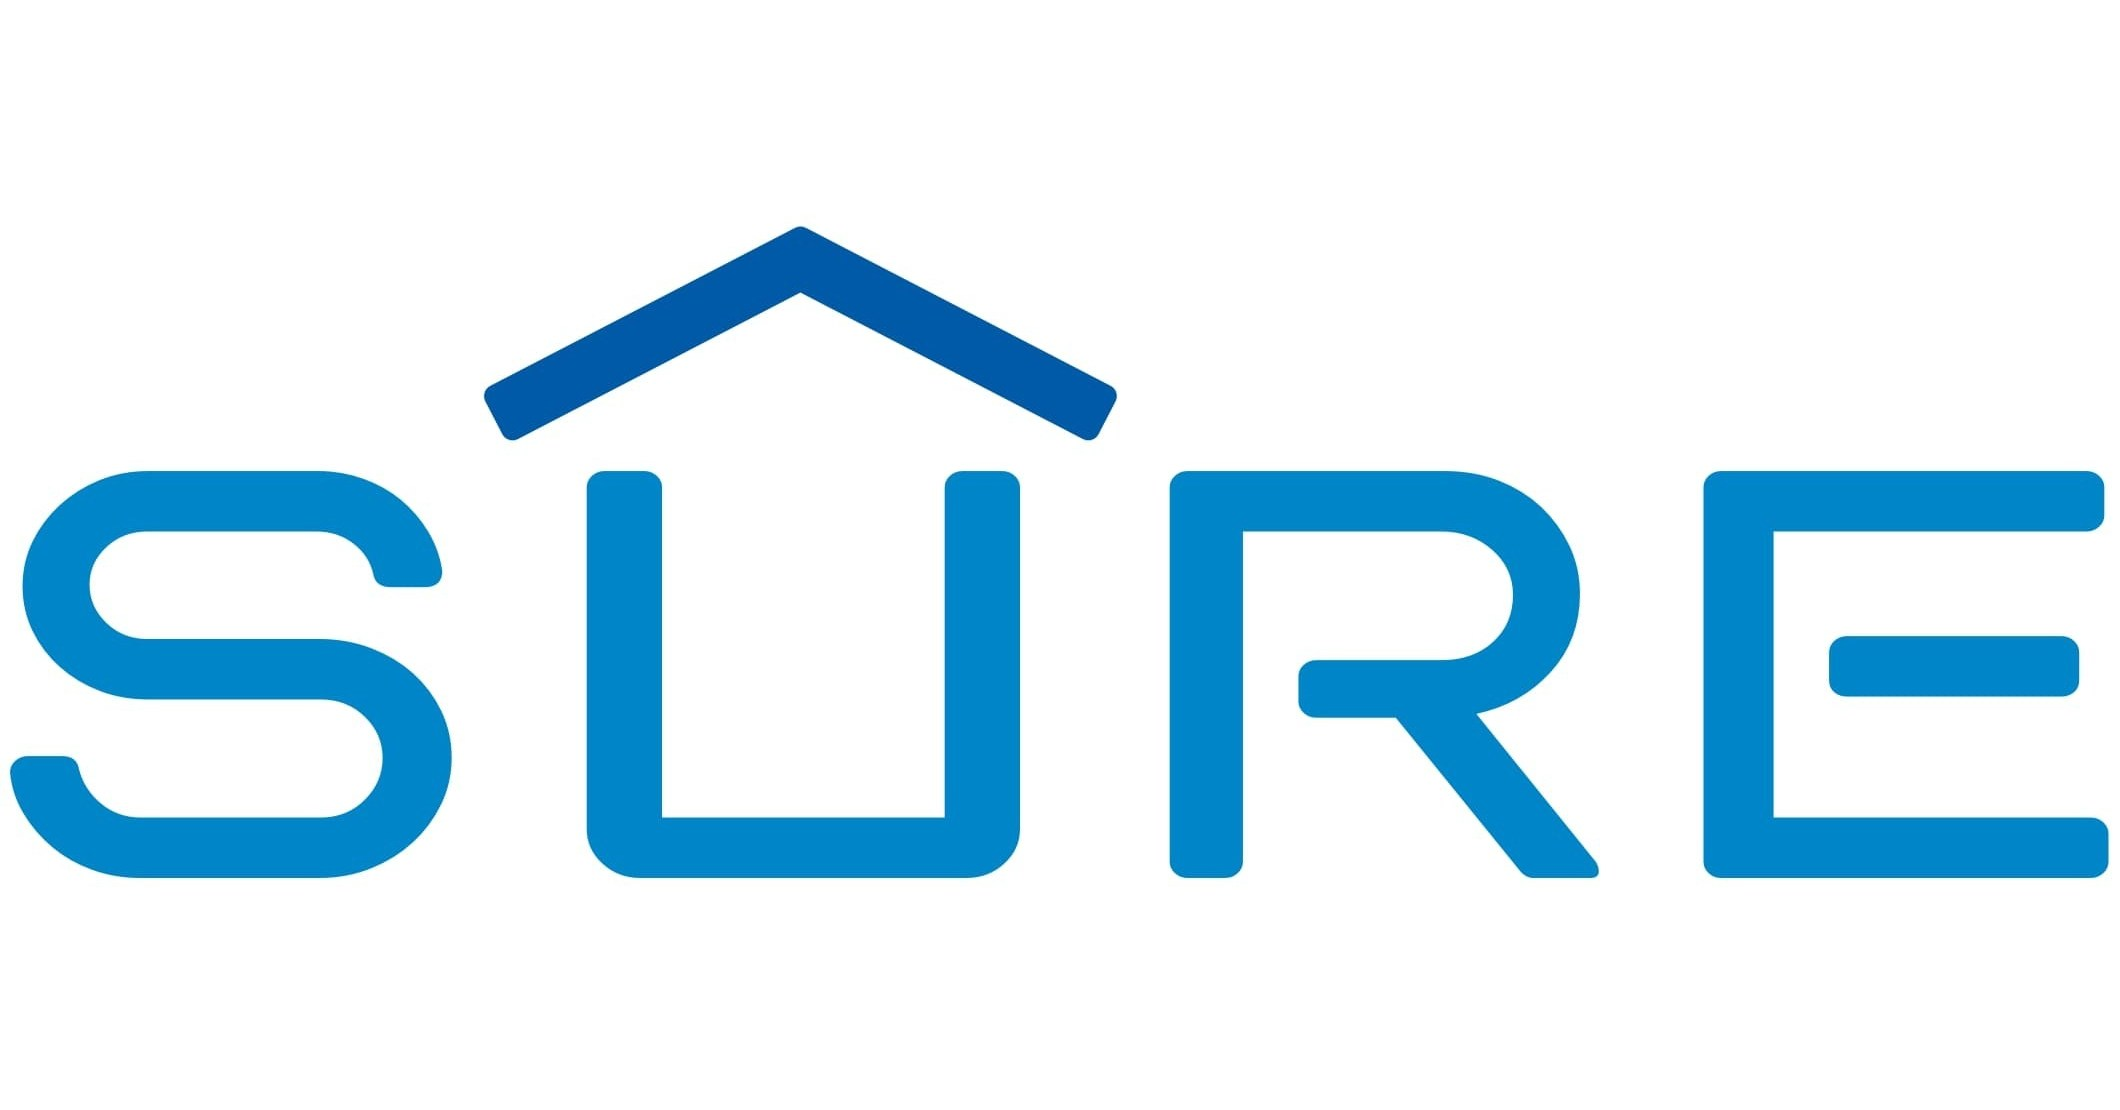 DUBAI, UAE and TEL AVIV, Israel, Sept. 22, 2020 /PRNewswire/ -- SURE Universal Ltd, a pioneering developer of IoT (Internet of Things) software for home healthcare, announced today it has partnered with HBK Department of Projects (HBK DOP) to launch a white l…